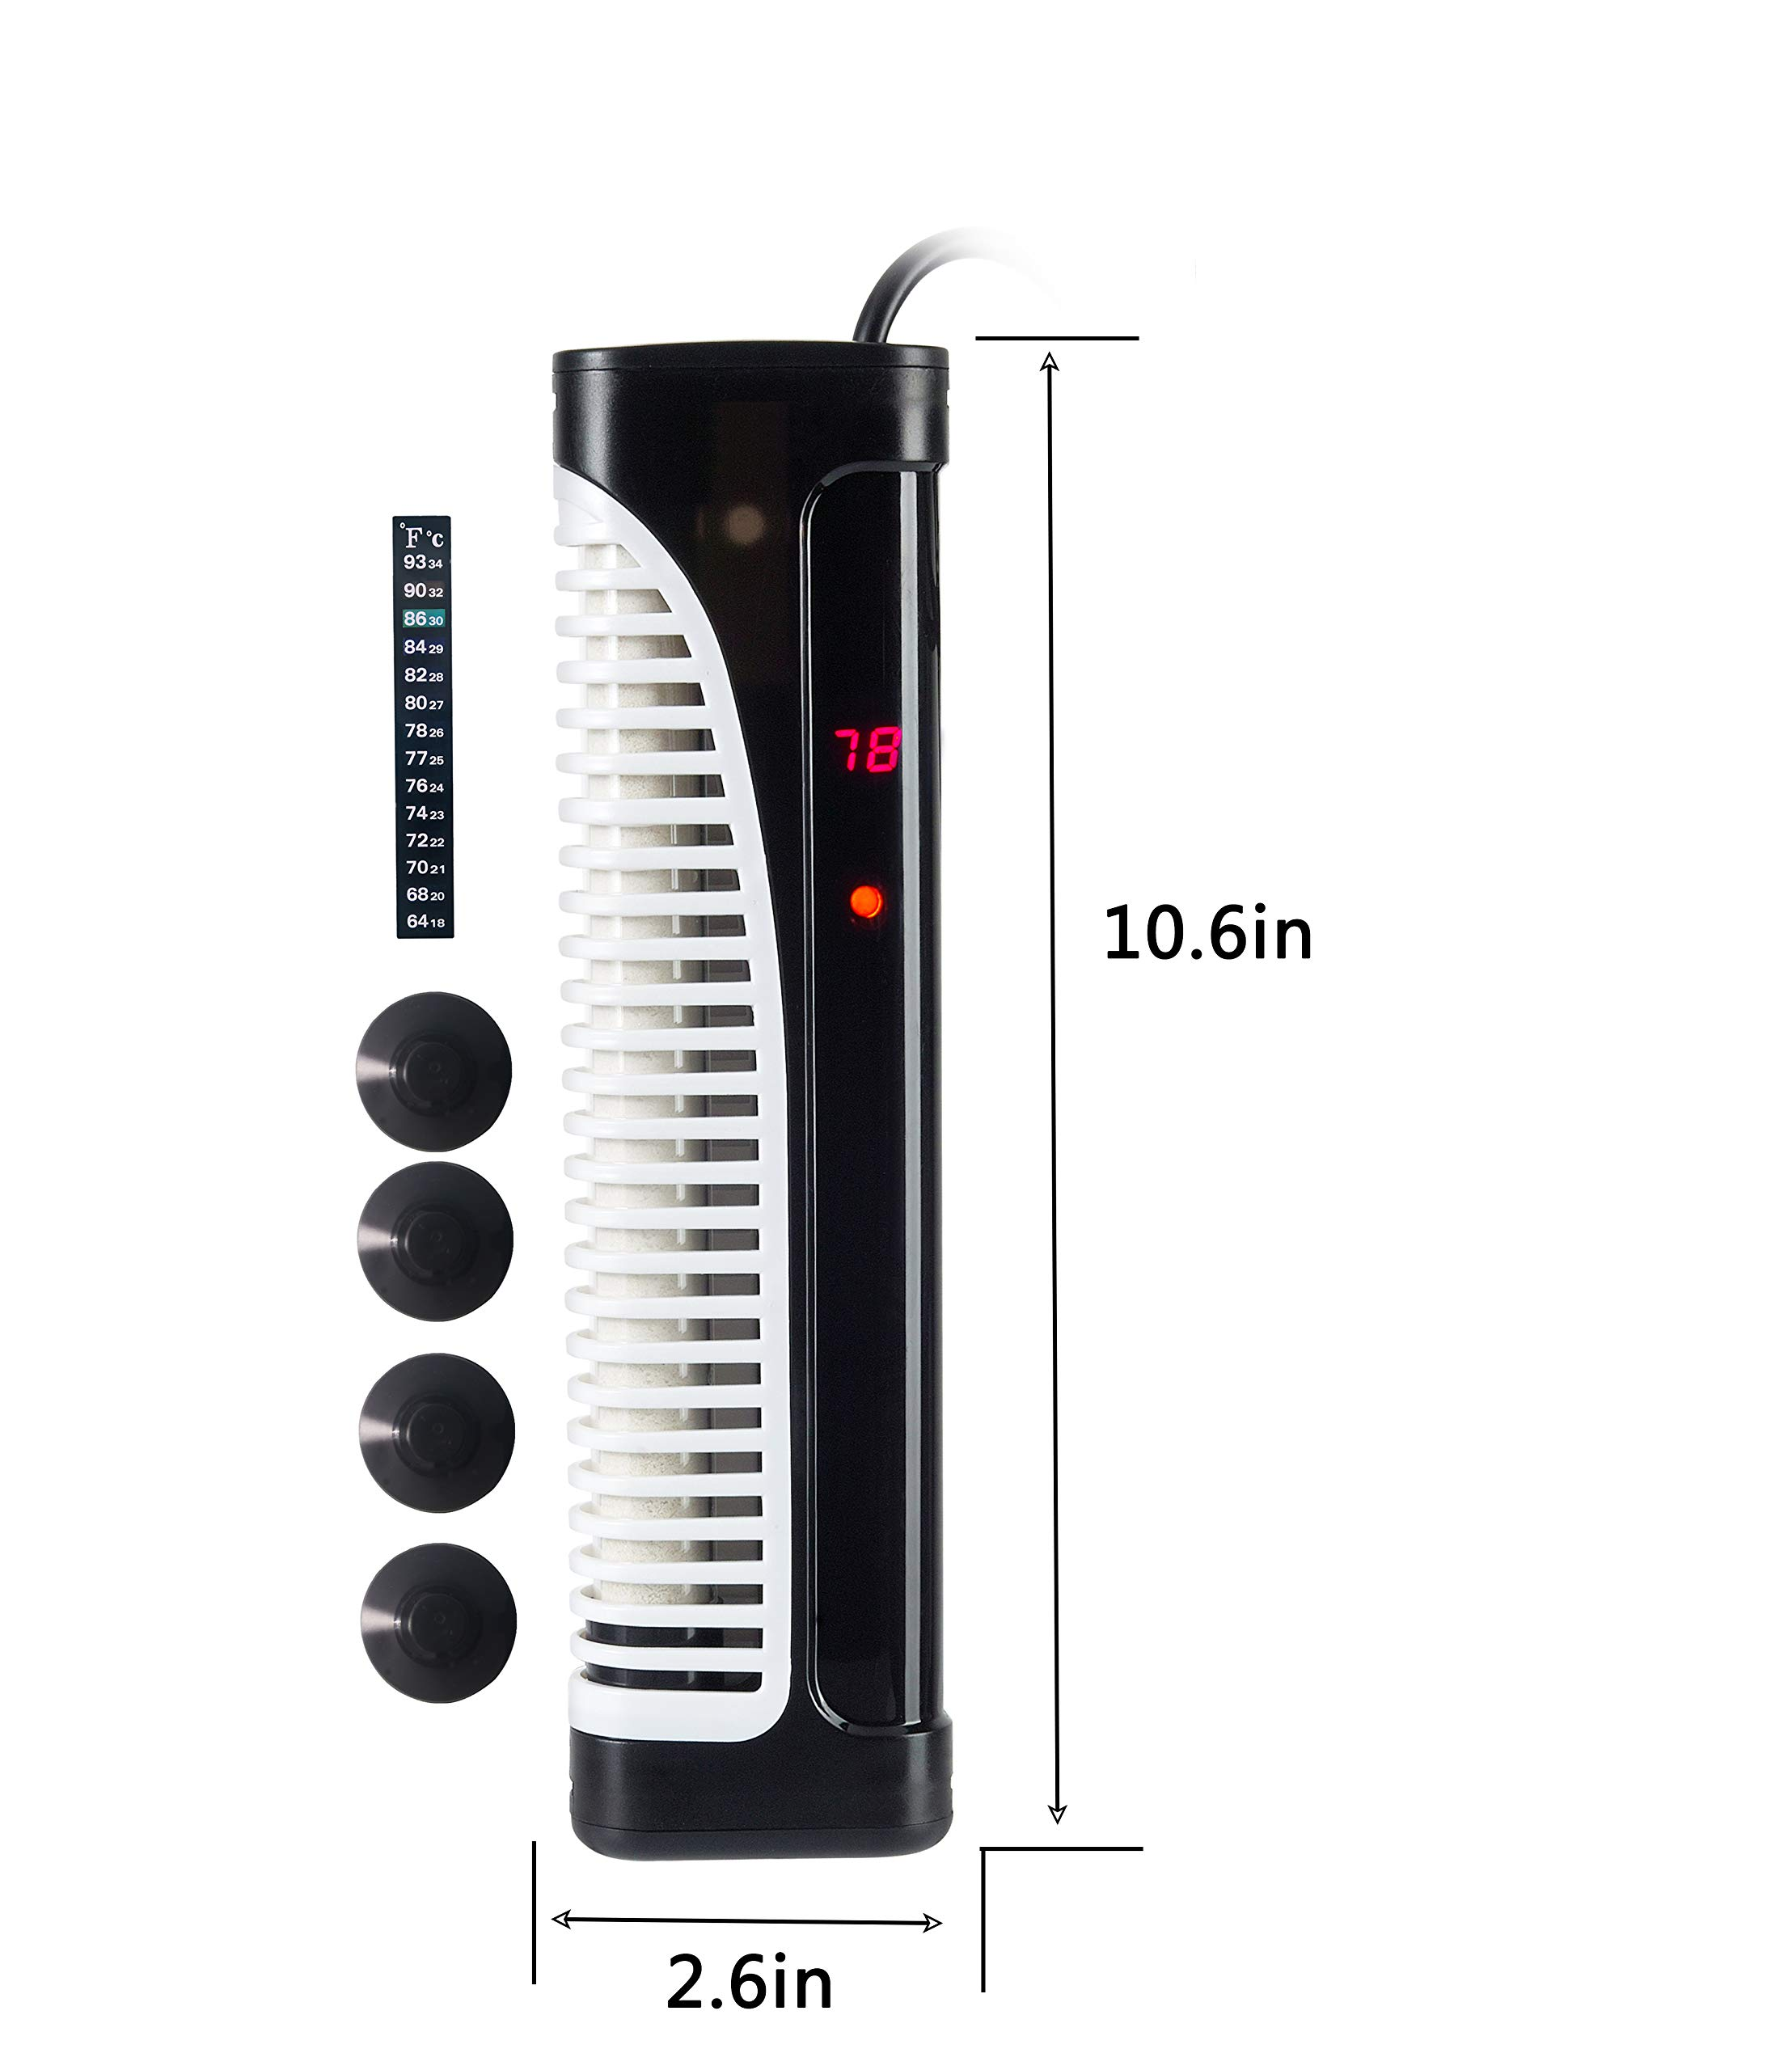 HITOP PTC Submersible Aquarium Heater, 300W (300W [65gal~105gal]) by HITOP